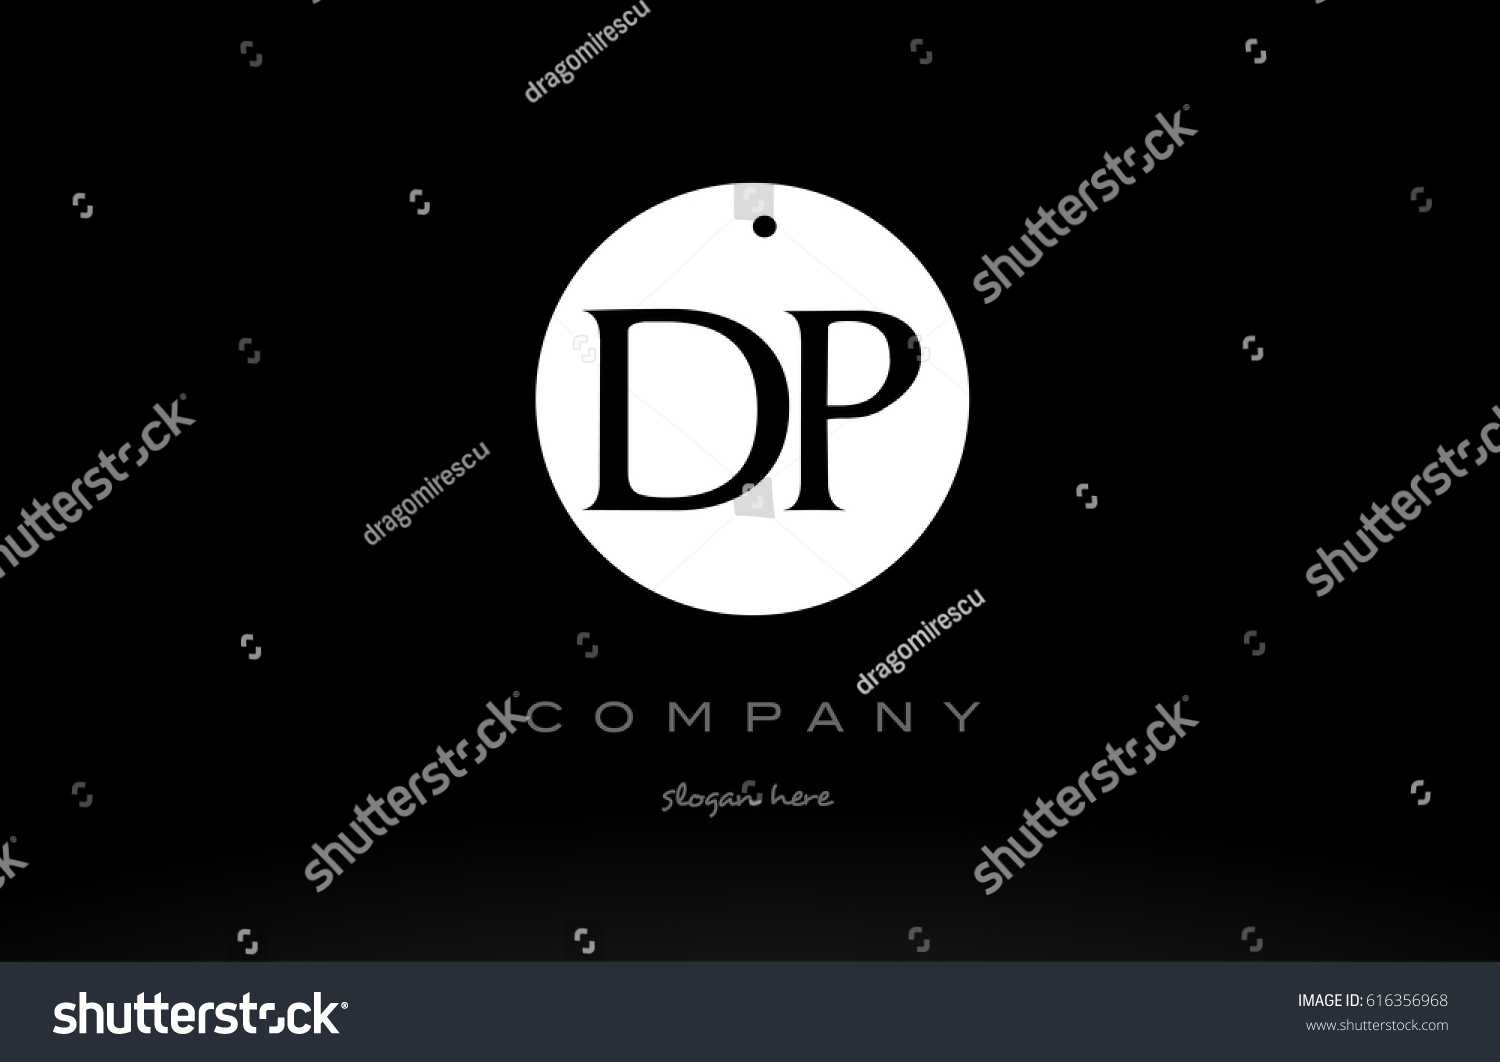 Dp d p simple black white circle background alphabet company logo design vector icon template